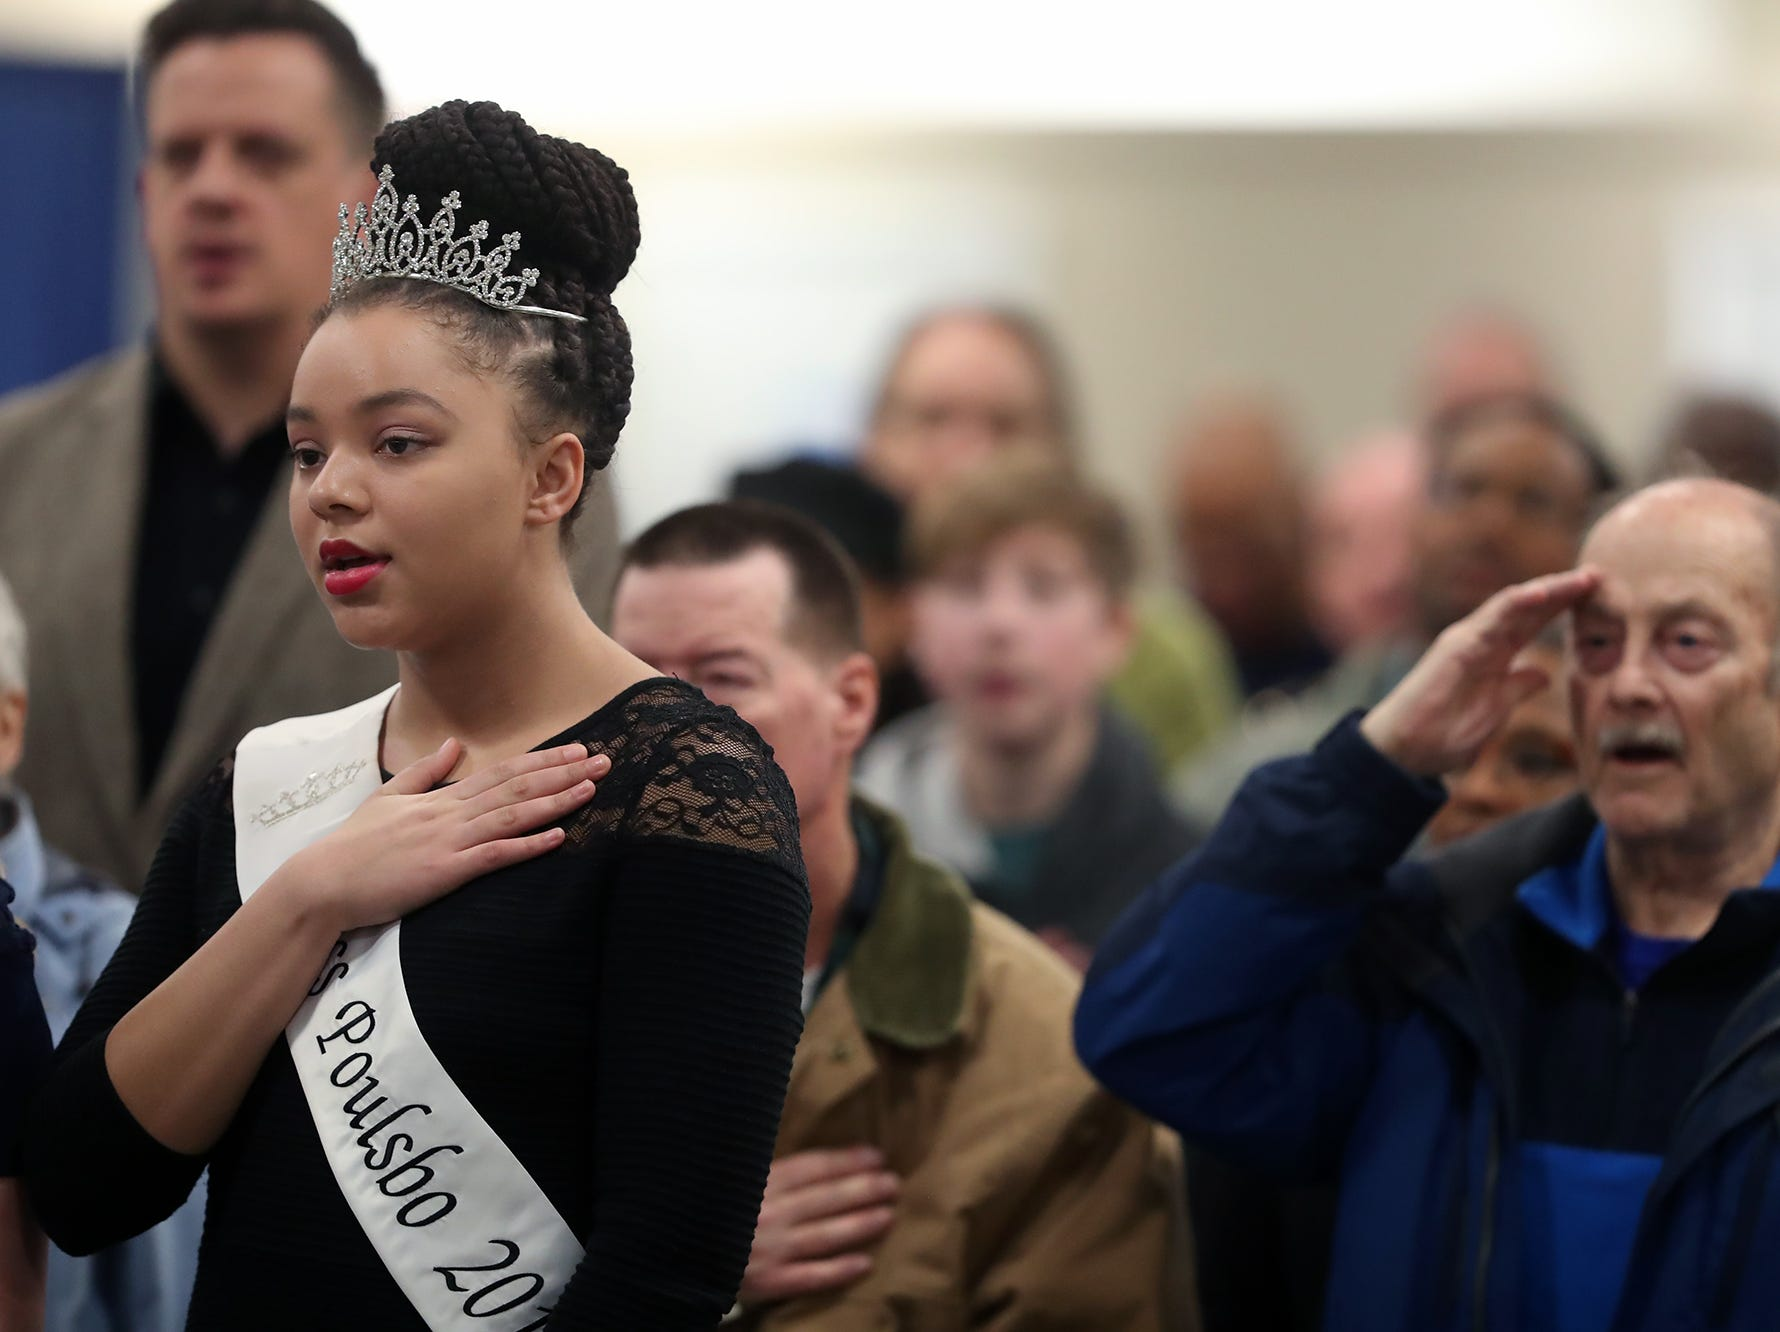 Miss Poulsbo Valentine Campbell during the National Anthem at the 25th annual Reverend Dr. Martin Luther King, Jr. celebration was held at PresidentsÕ Hall at the Kitsap County Fairgrounds on Monday, January, 21 , 2019.